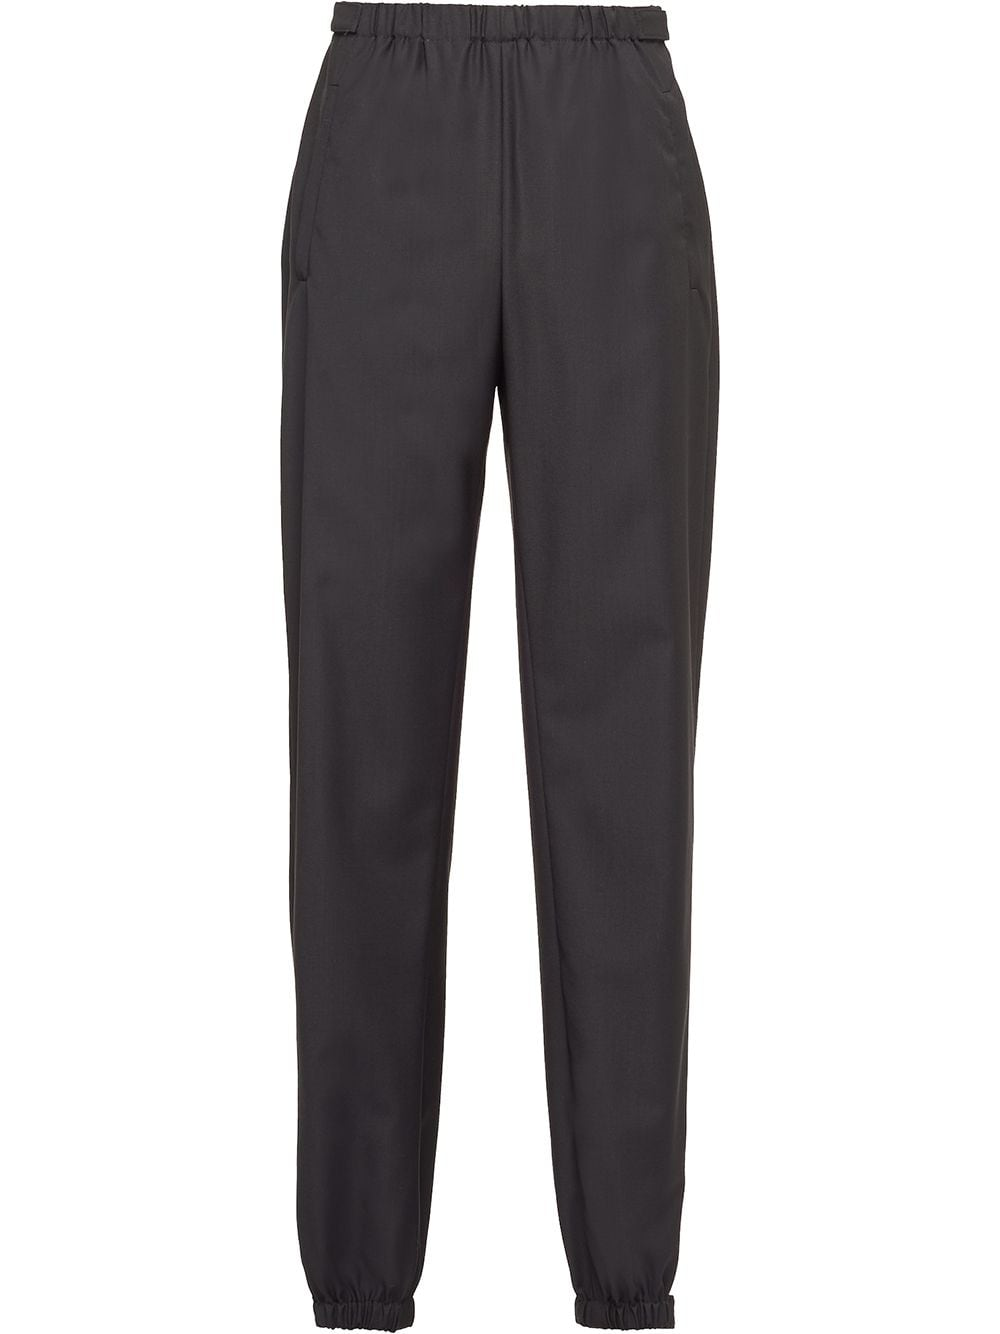 Prada elasticated-waist tapered trousers - Black von Prada